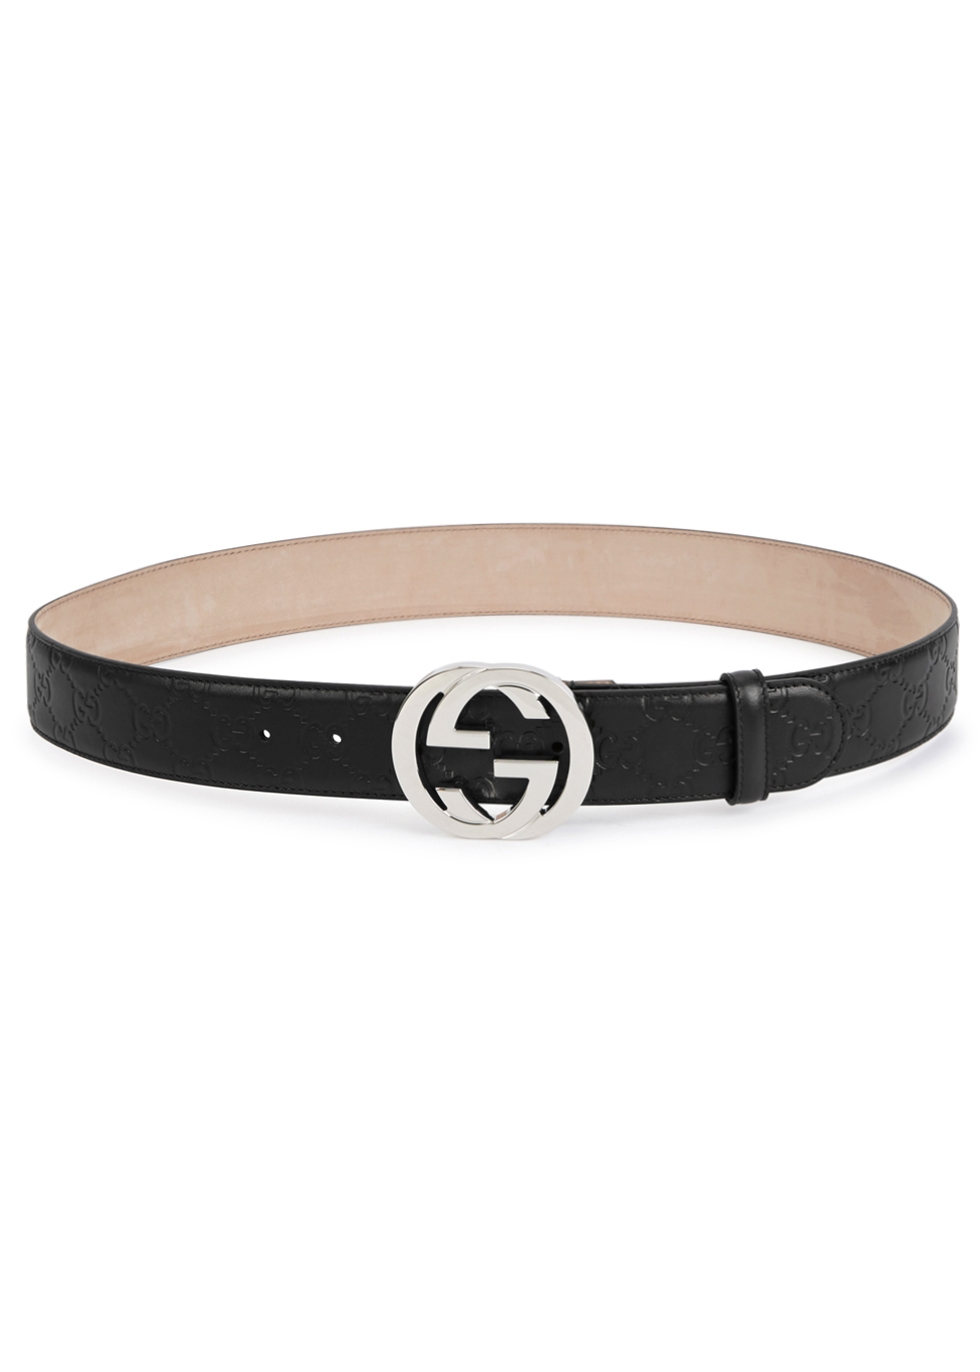 GUCCI BLACK MONOGRAMMED LEATHER BELT